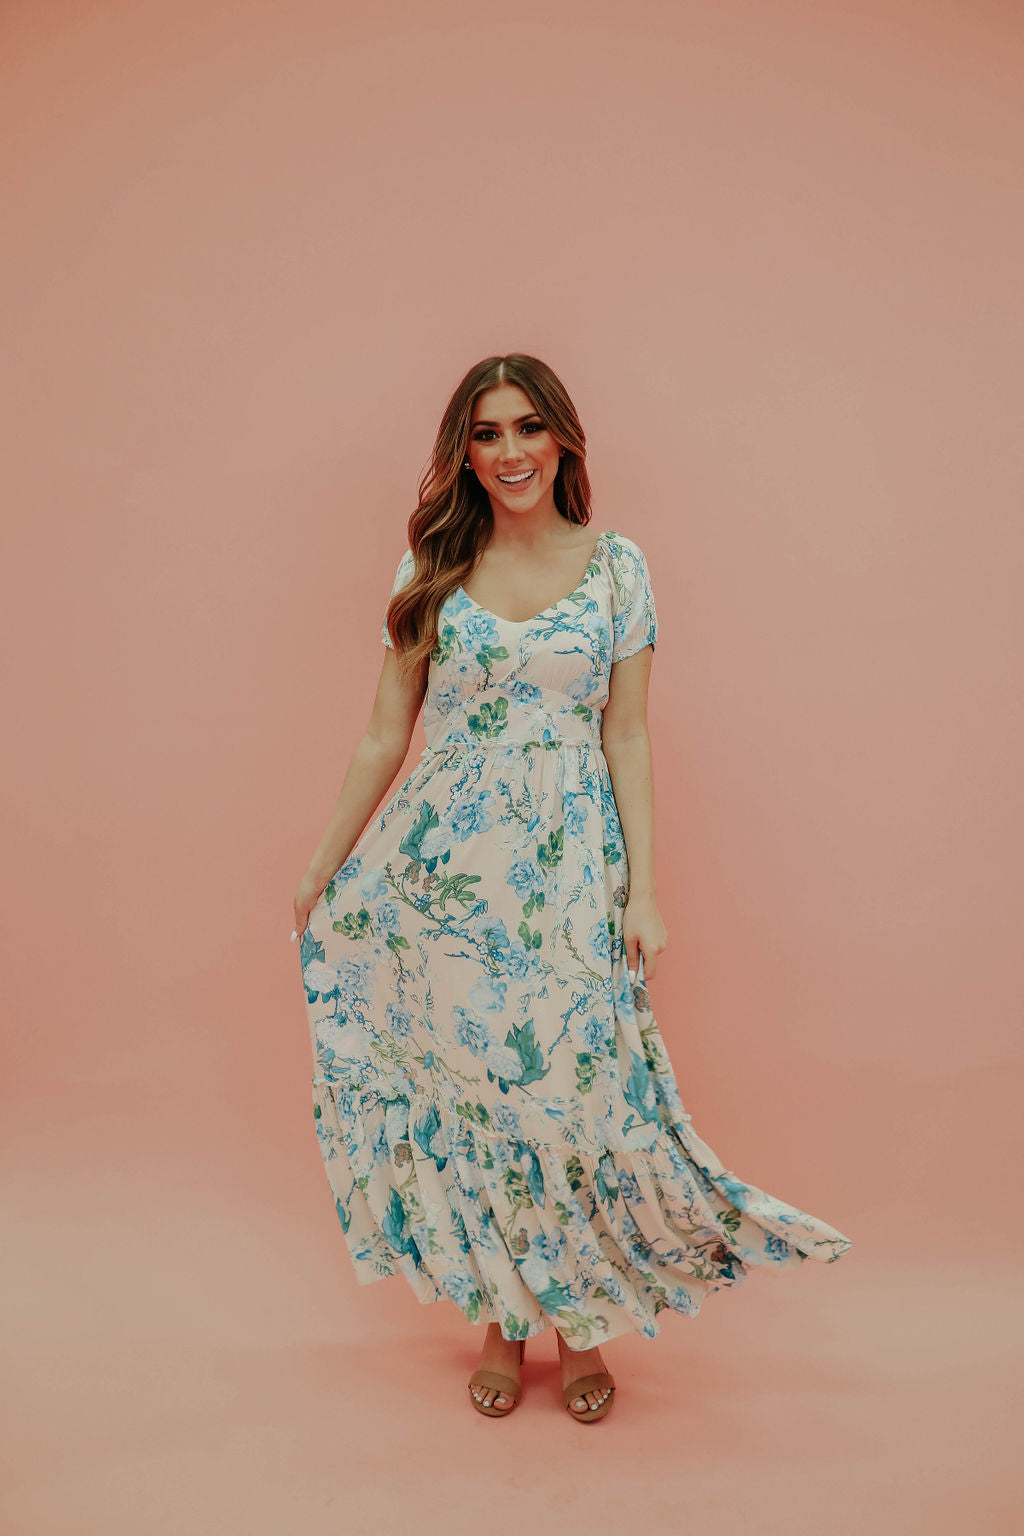 THE JENNA FLORAL MAXI DRESS IN BEIGE